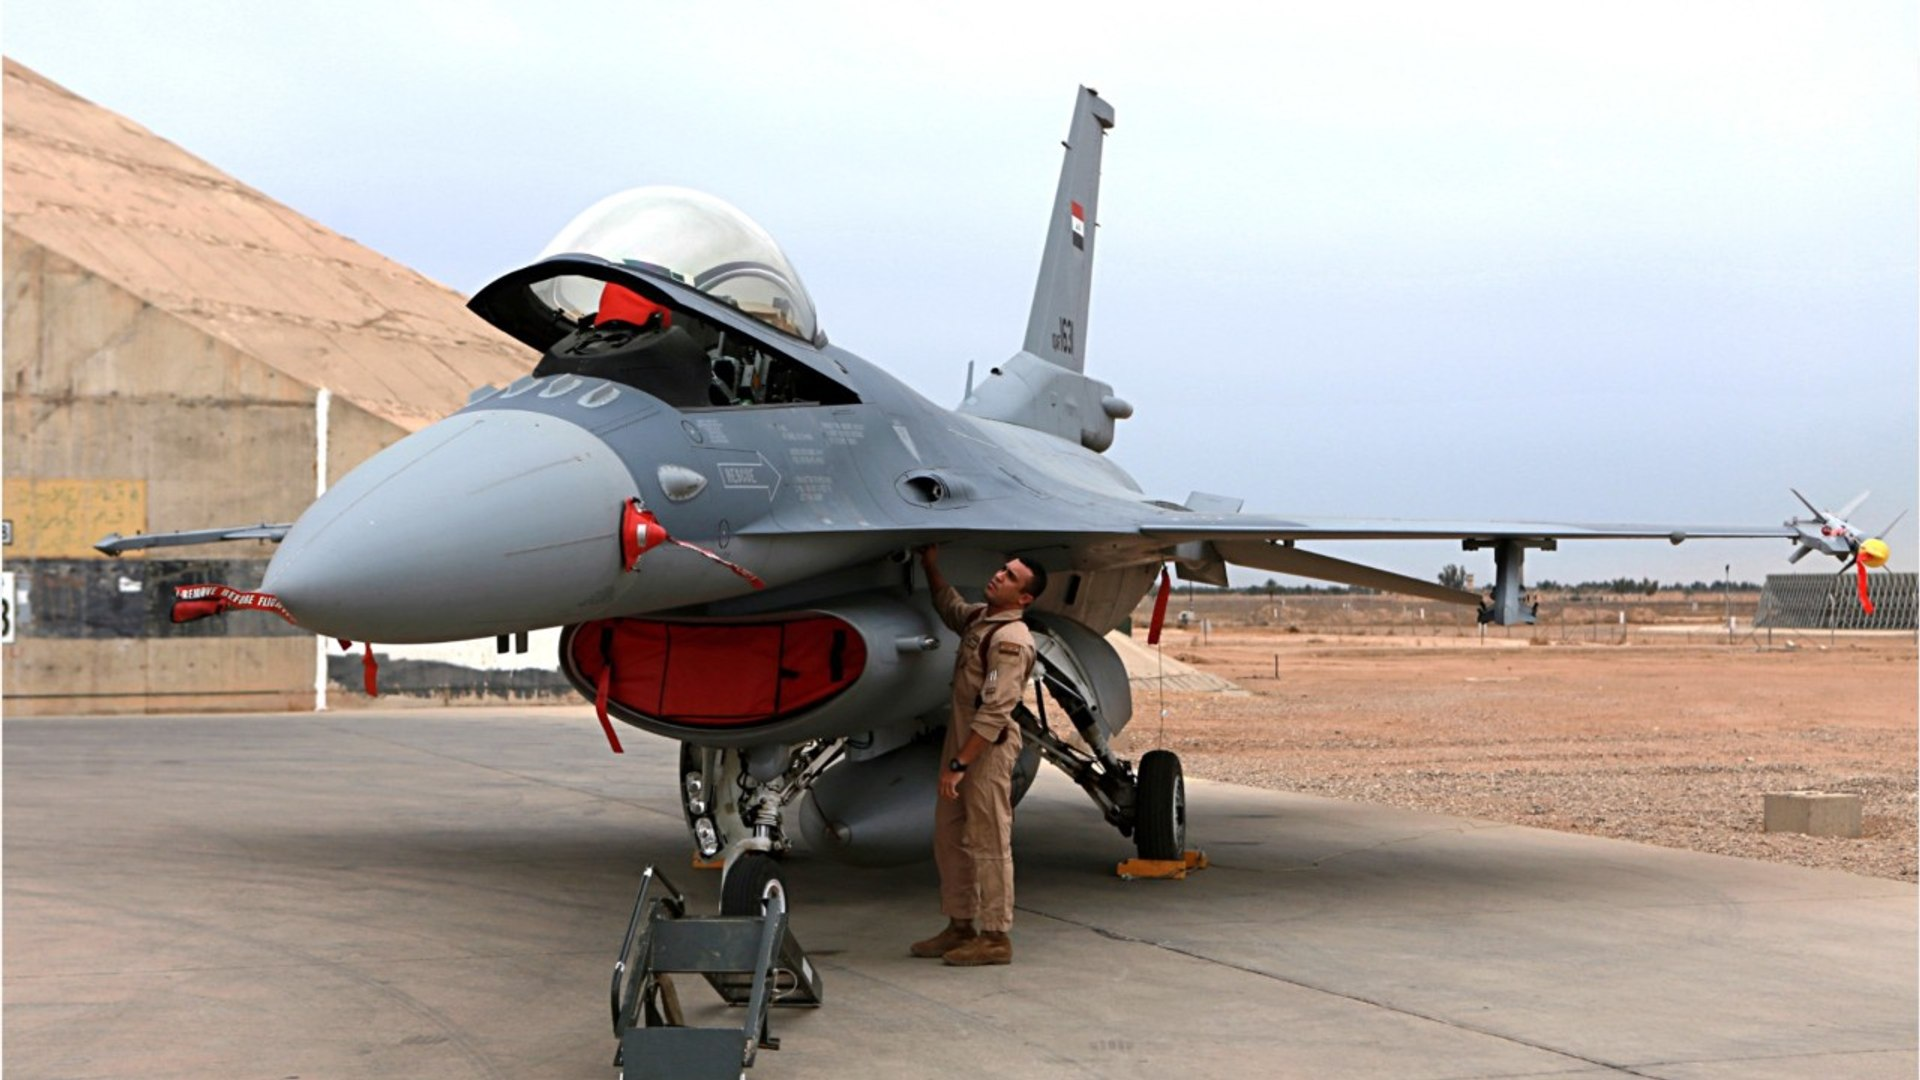 Iraqi Air Strike Targets Islamic State Position In Syria